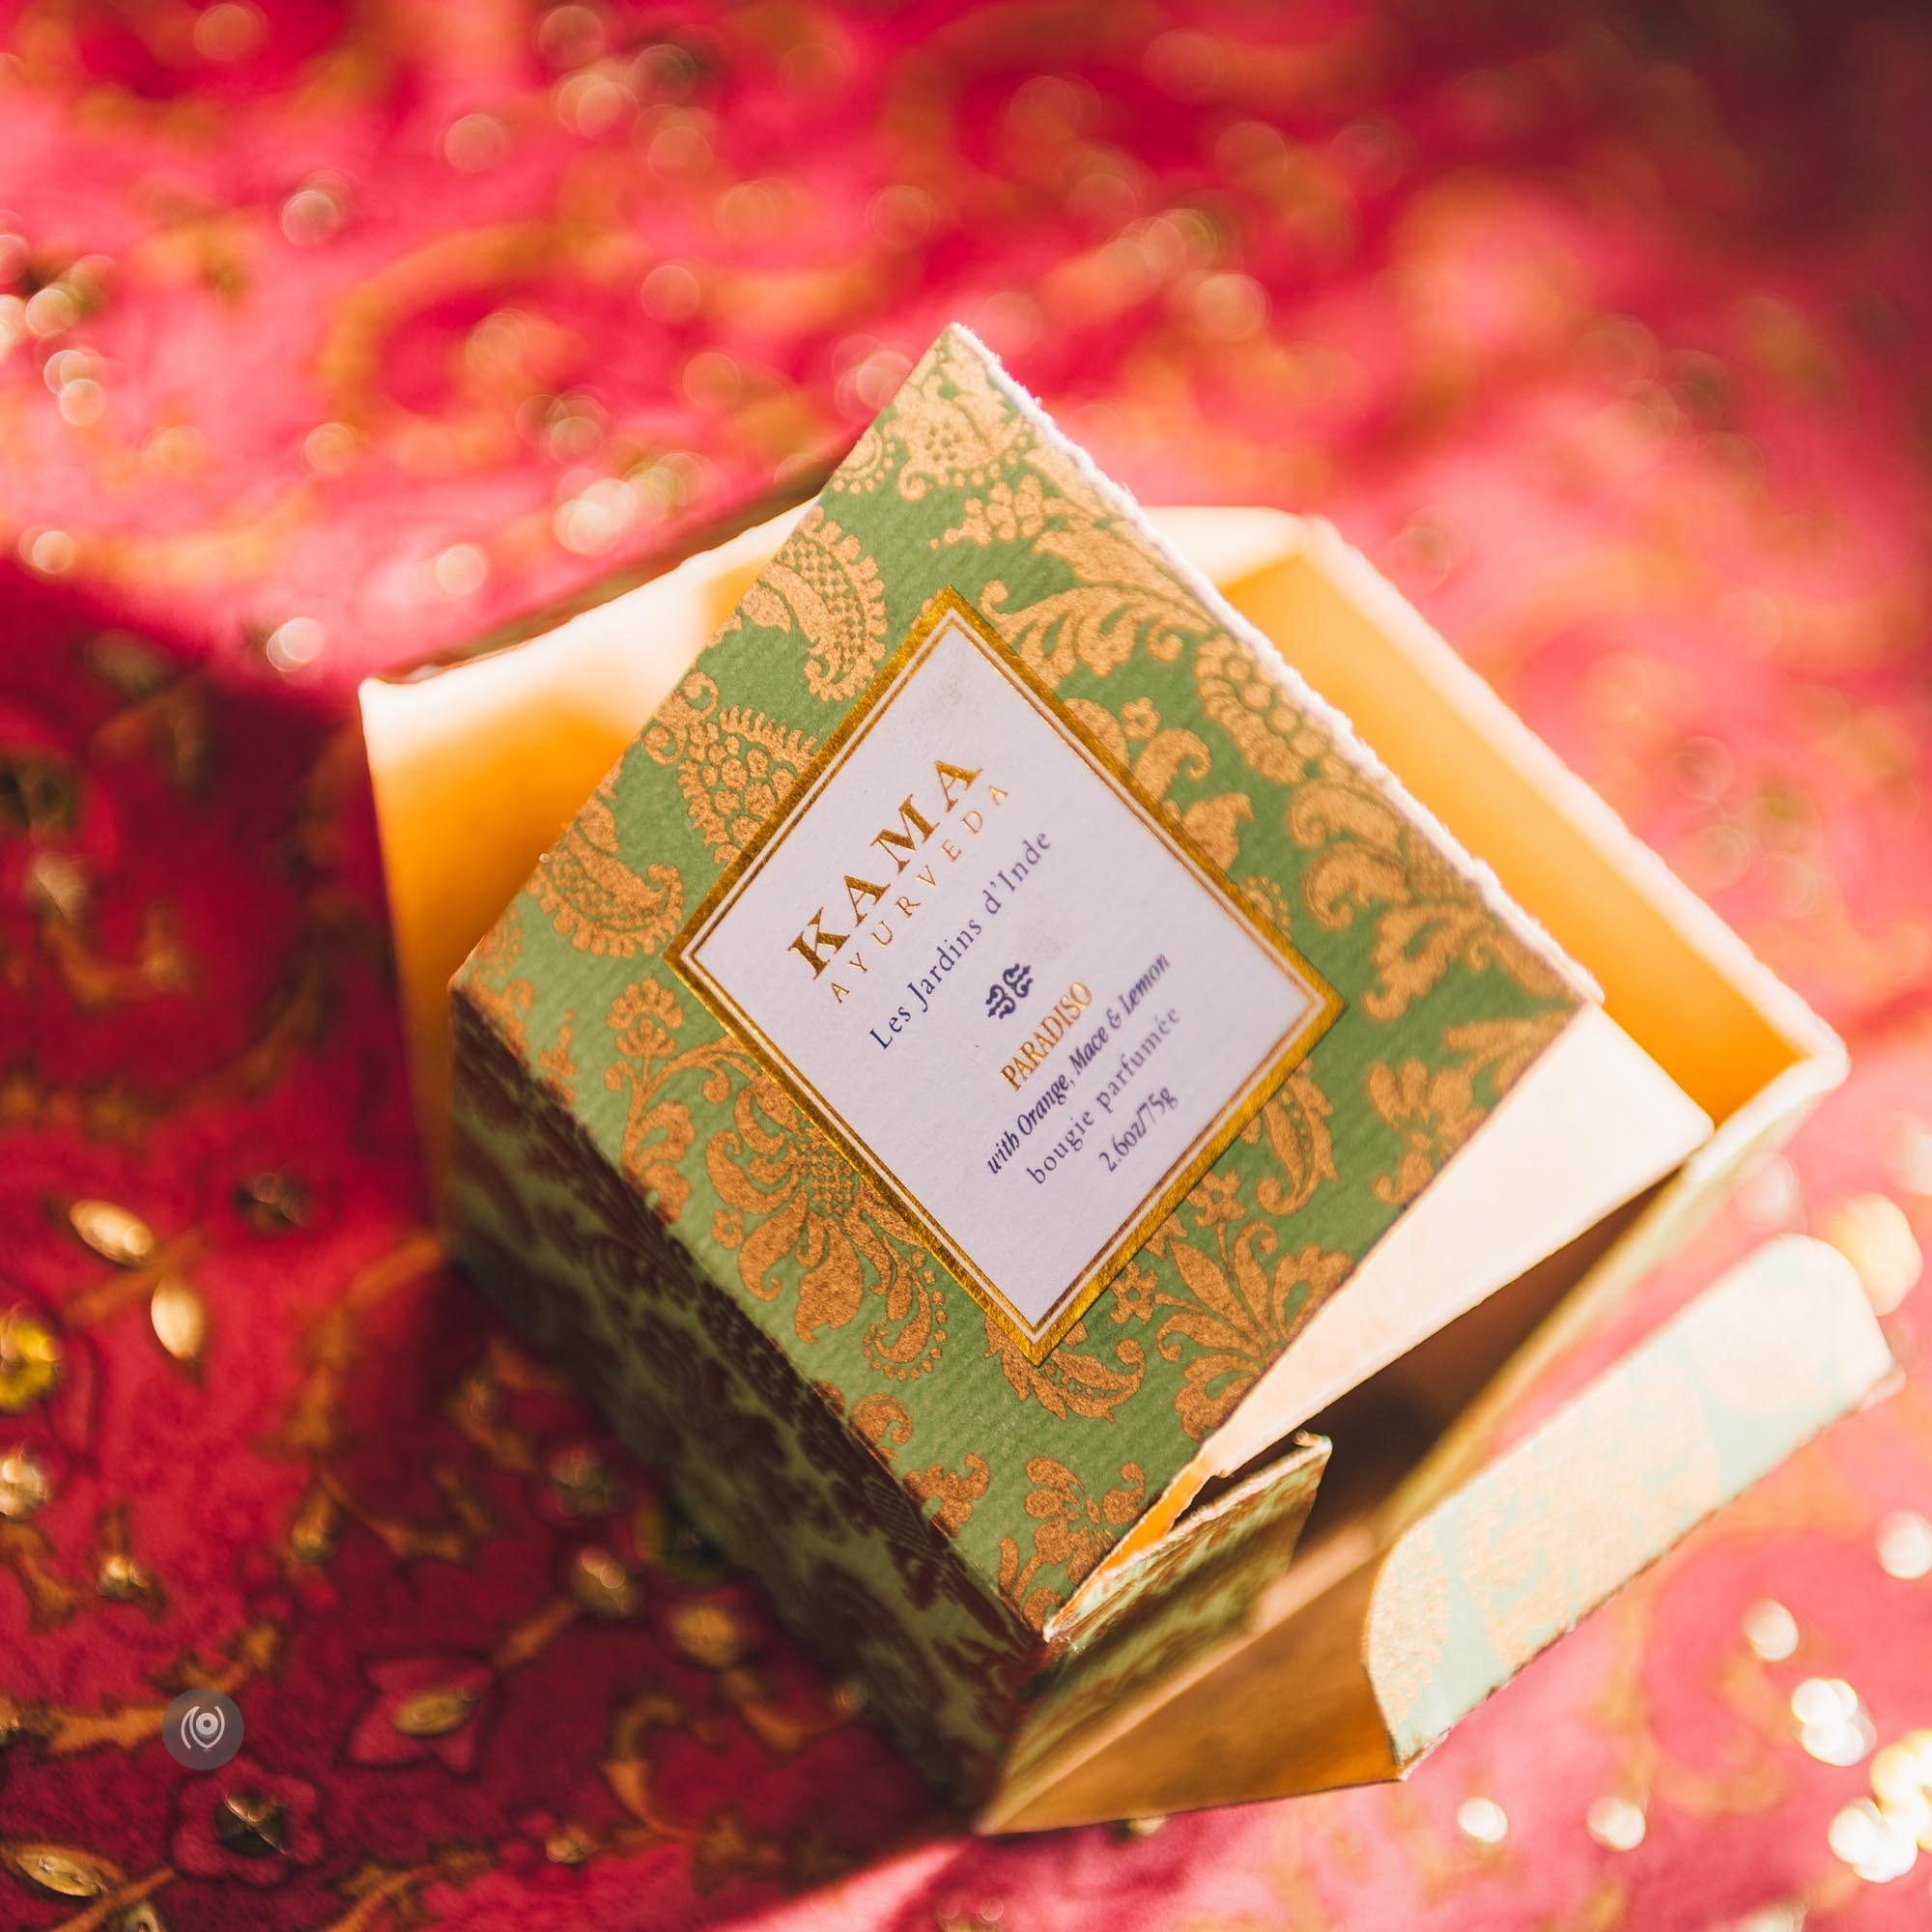 Naina.co-Luxury-Lifestyle-Photographer-Dec15-Kama-Ayurveda-EyesForBeauty-Winter-Care-SinCare-04